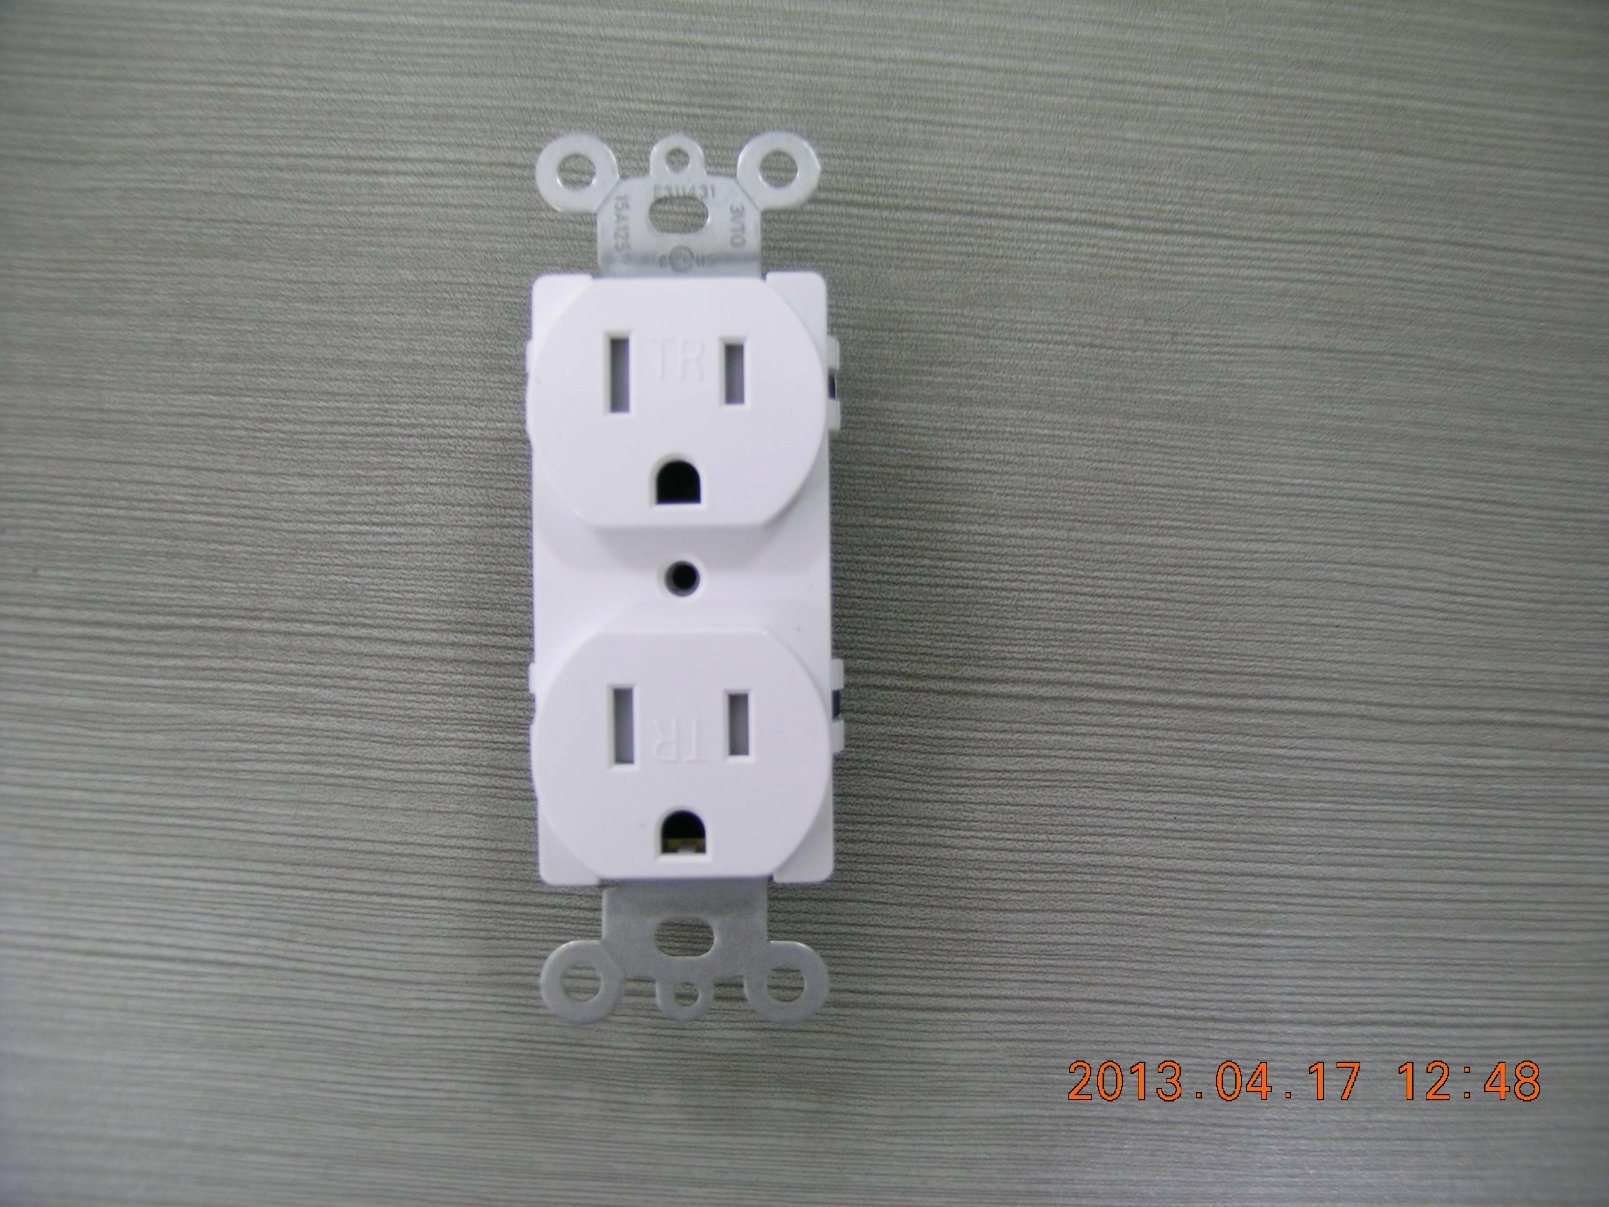 Stand Duplex Electrical Outlet, Straight Blade, Residential Grade, Tamper-Resistant, 15 a, 125VAC, NEMA 5-15r, UL Listing